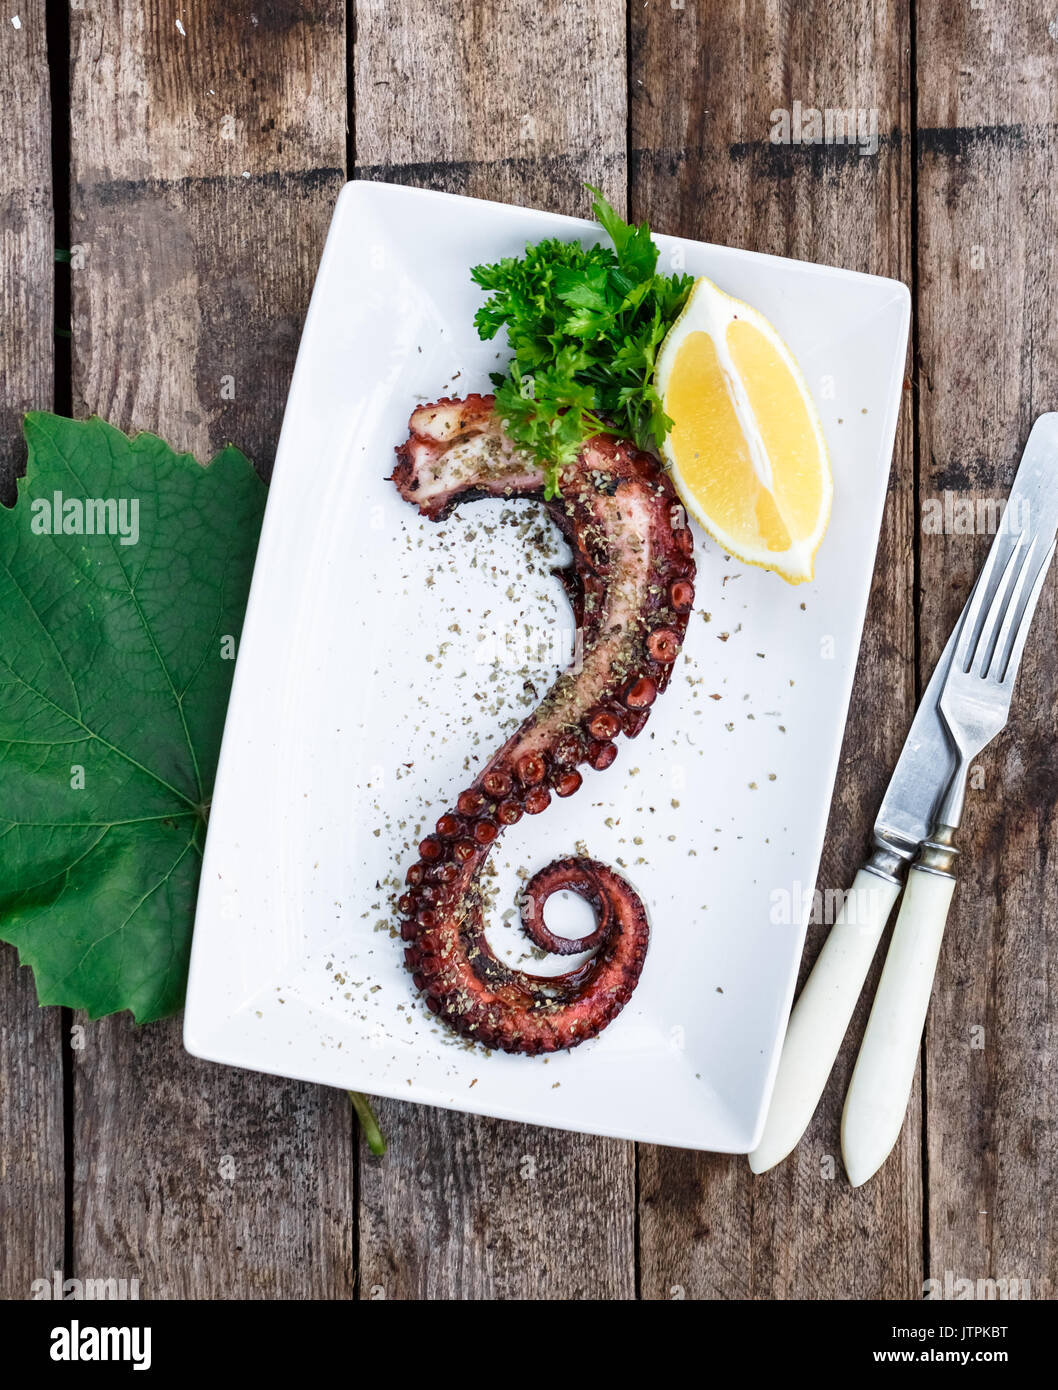 Served Octopus Tentacle on White plate with lemon and oregano - Stock Image